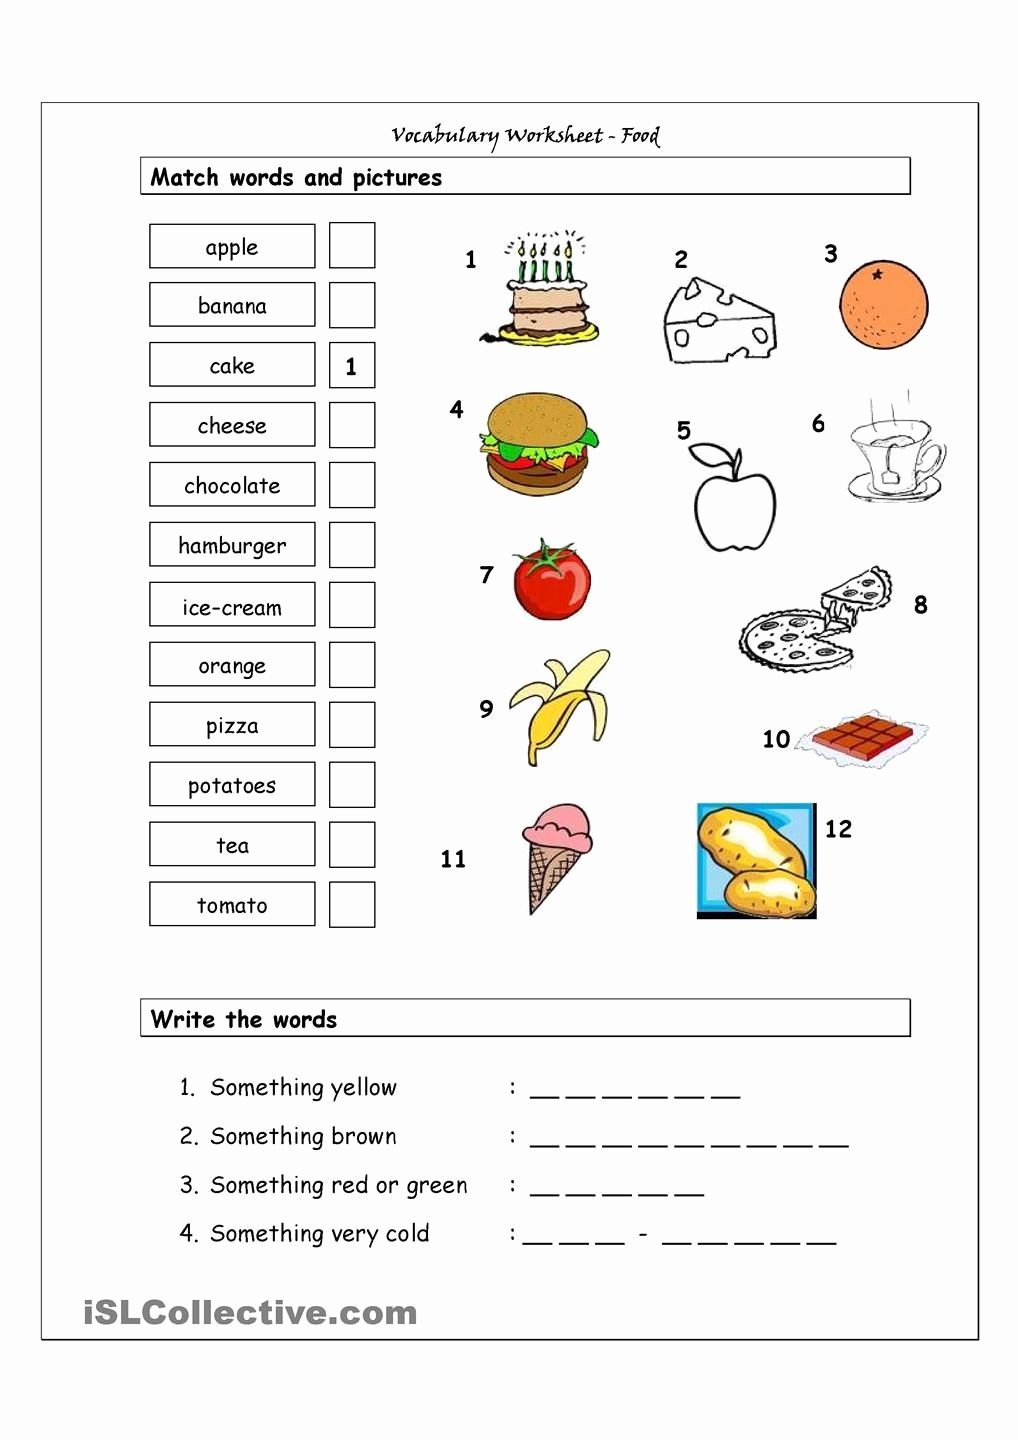 Vocabulary Worksheets for Preschoolers Lovely Vocabulary Matching Worksheet Food